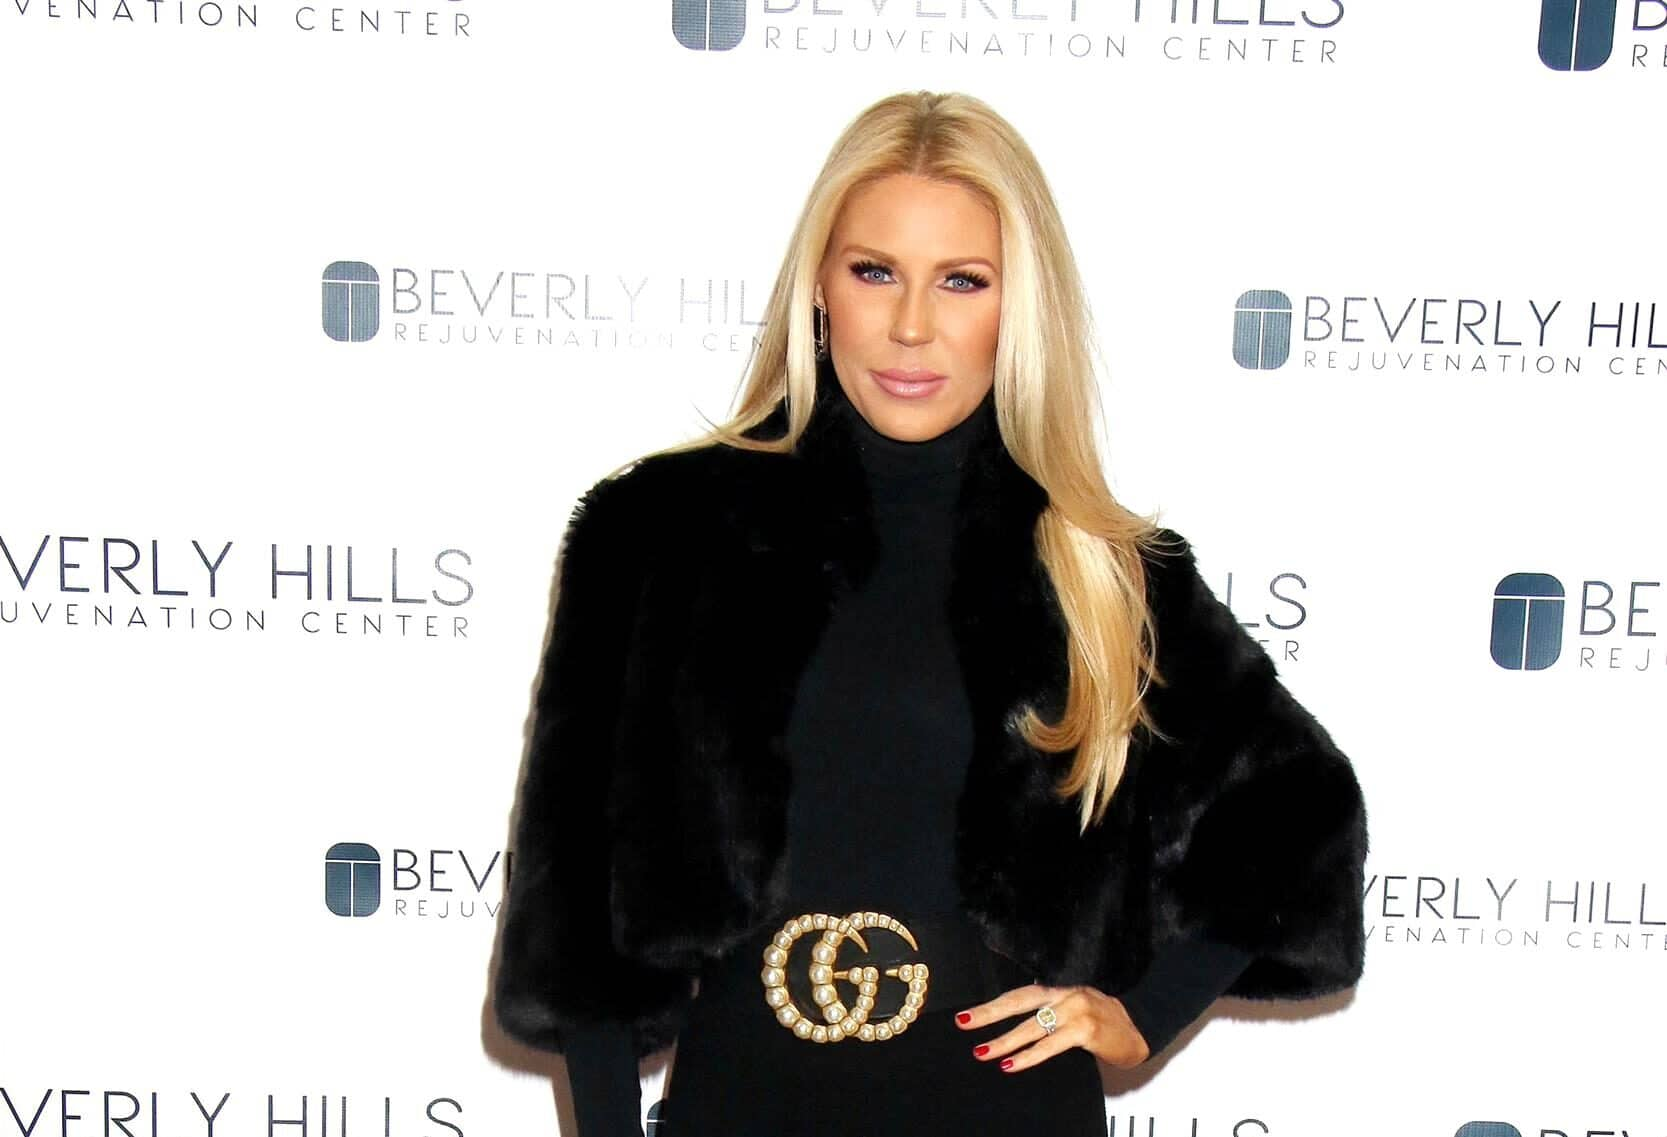 RHOC's Gretchen Rossi Opens Up About Her Home's Foreclosure and the Financial Difficulties She and Slade Smiley Faced After Leaving Bravo Years Ago